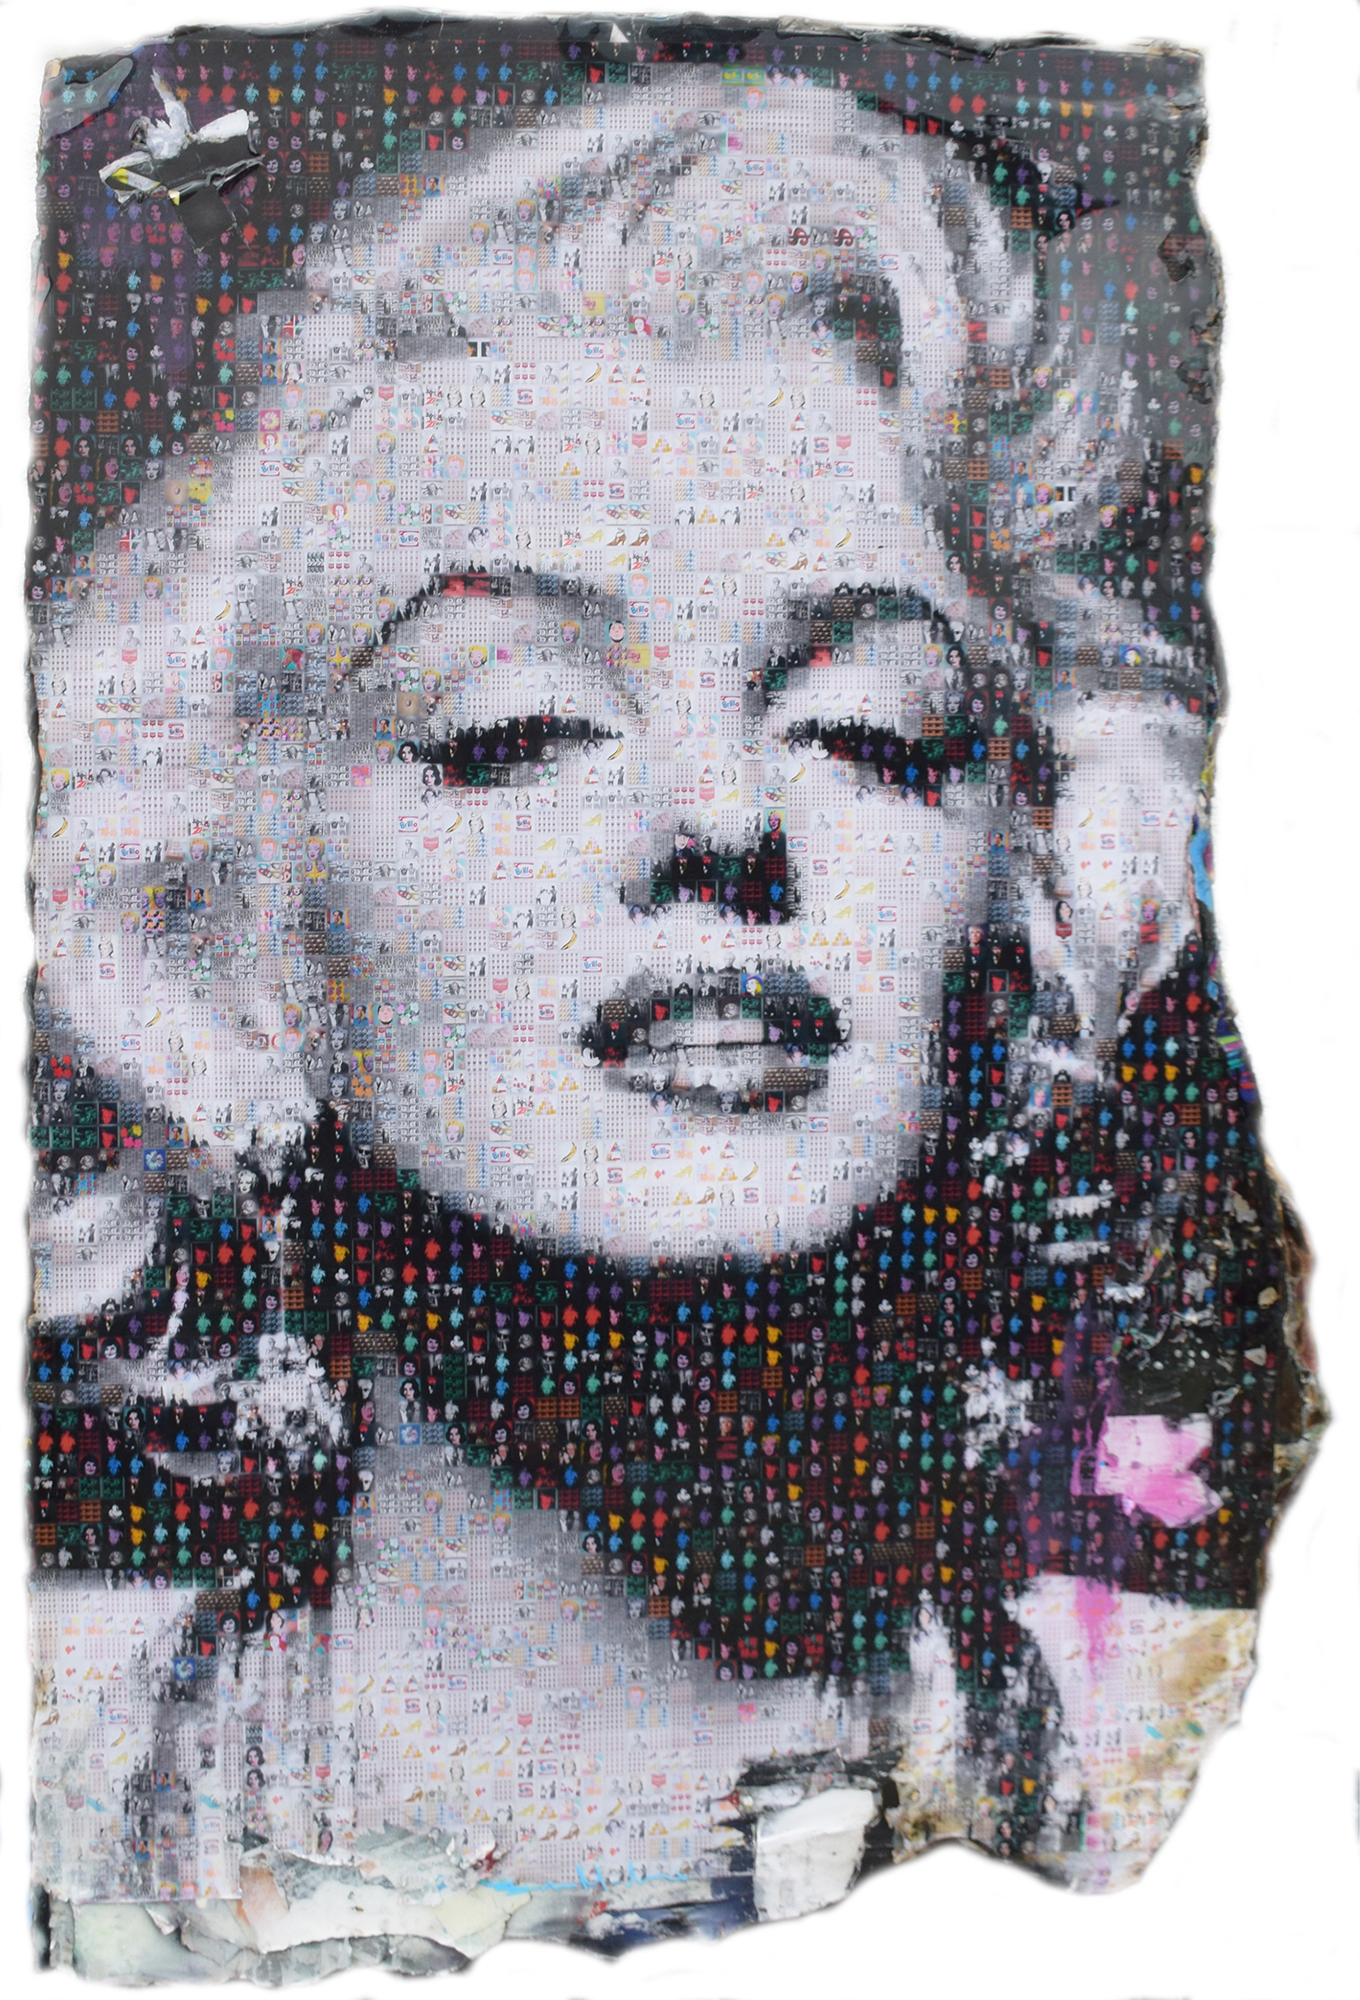 Bram Reijnders - Warhol made Marilyn , 8029-012-972